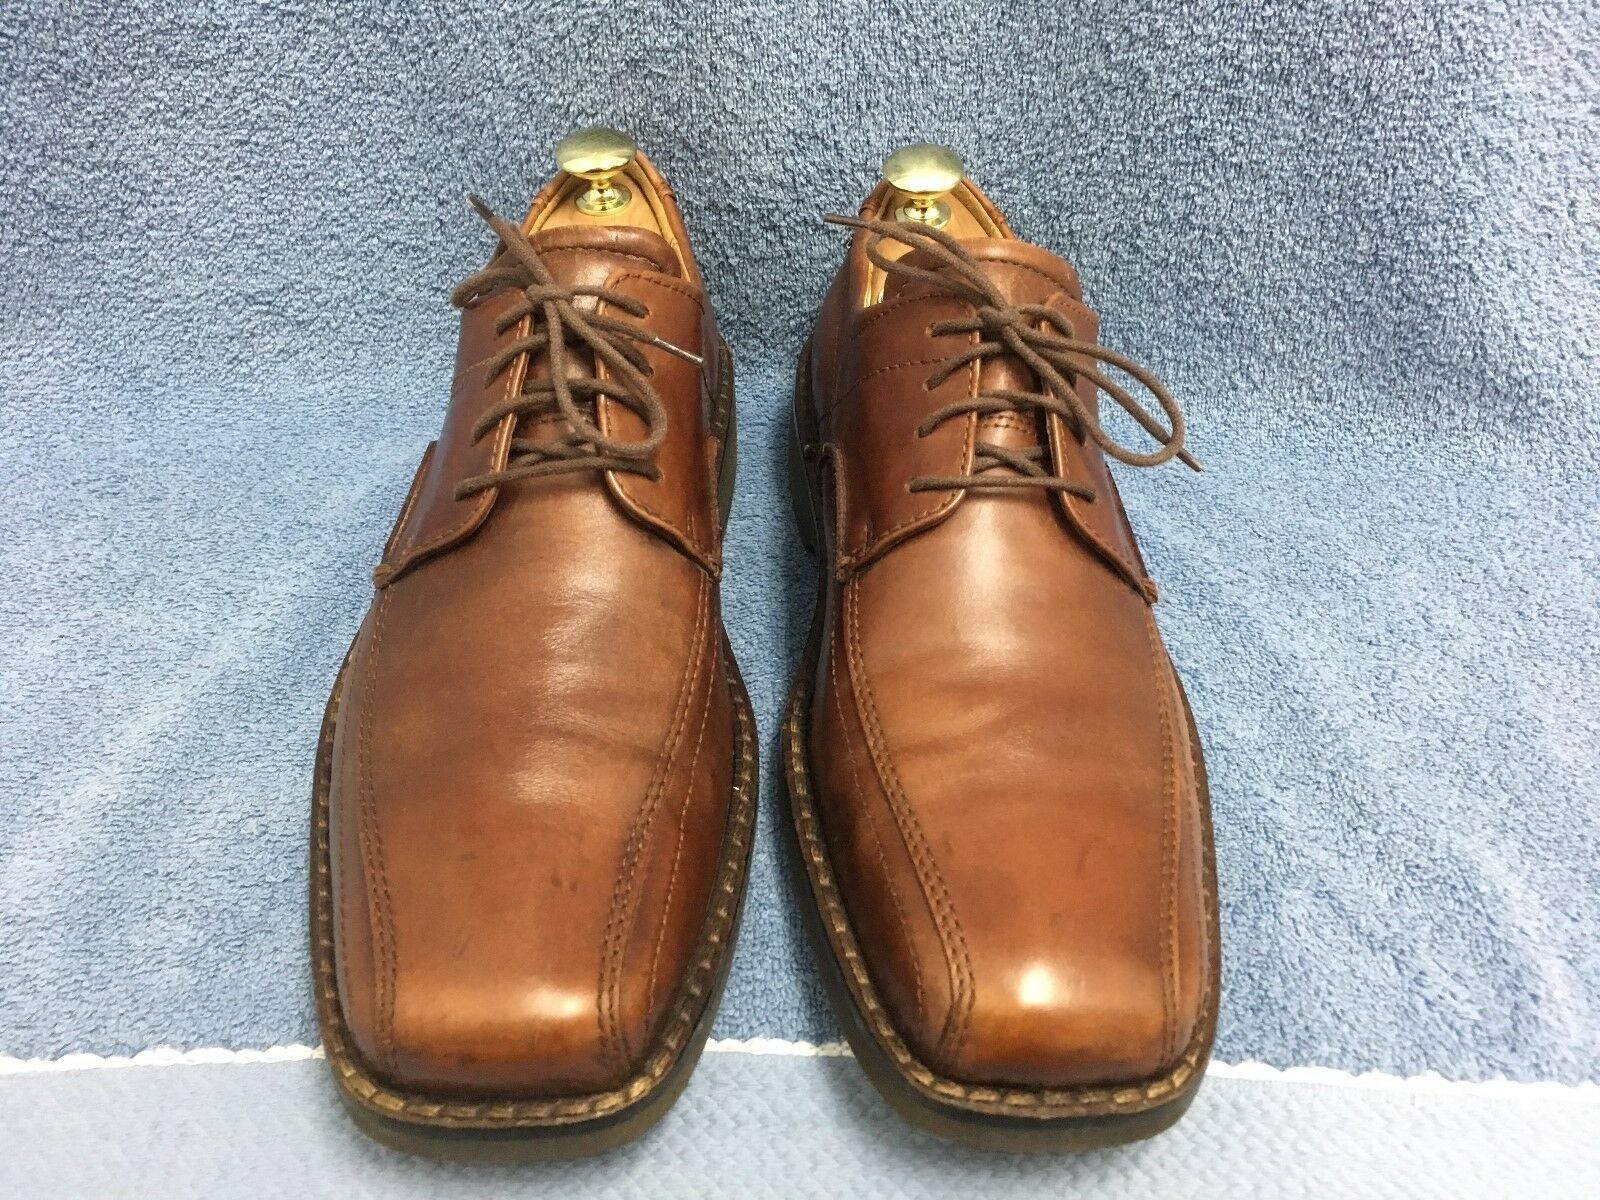 ECCO Bicycle Square Toe 34464 Brown Leather Dress Oxfords 44 EU Men's 10-10.5 US